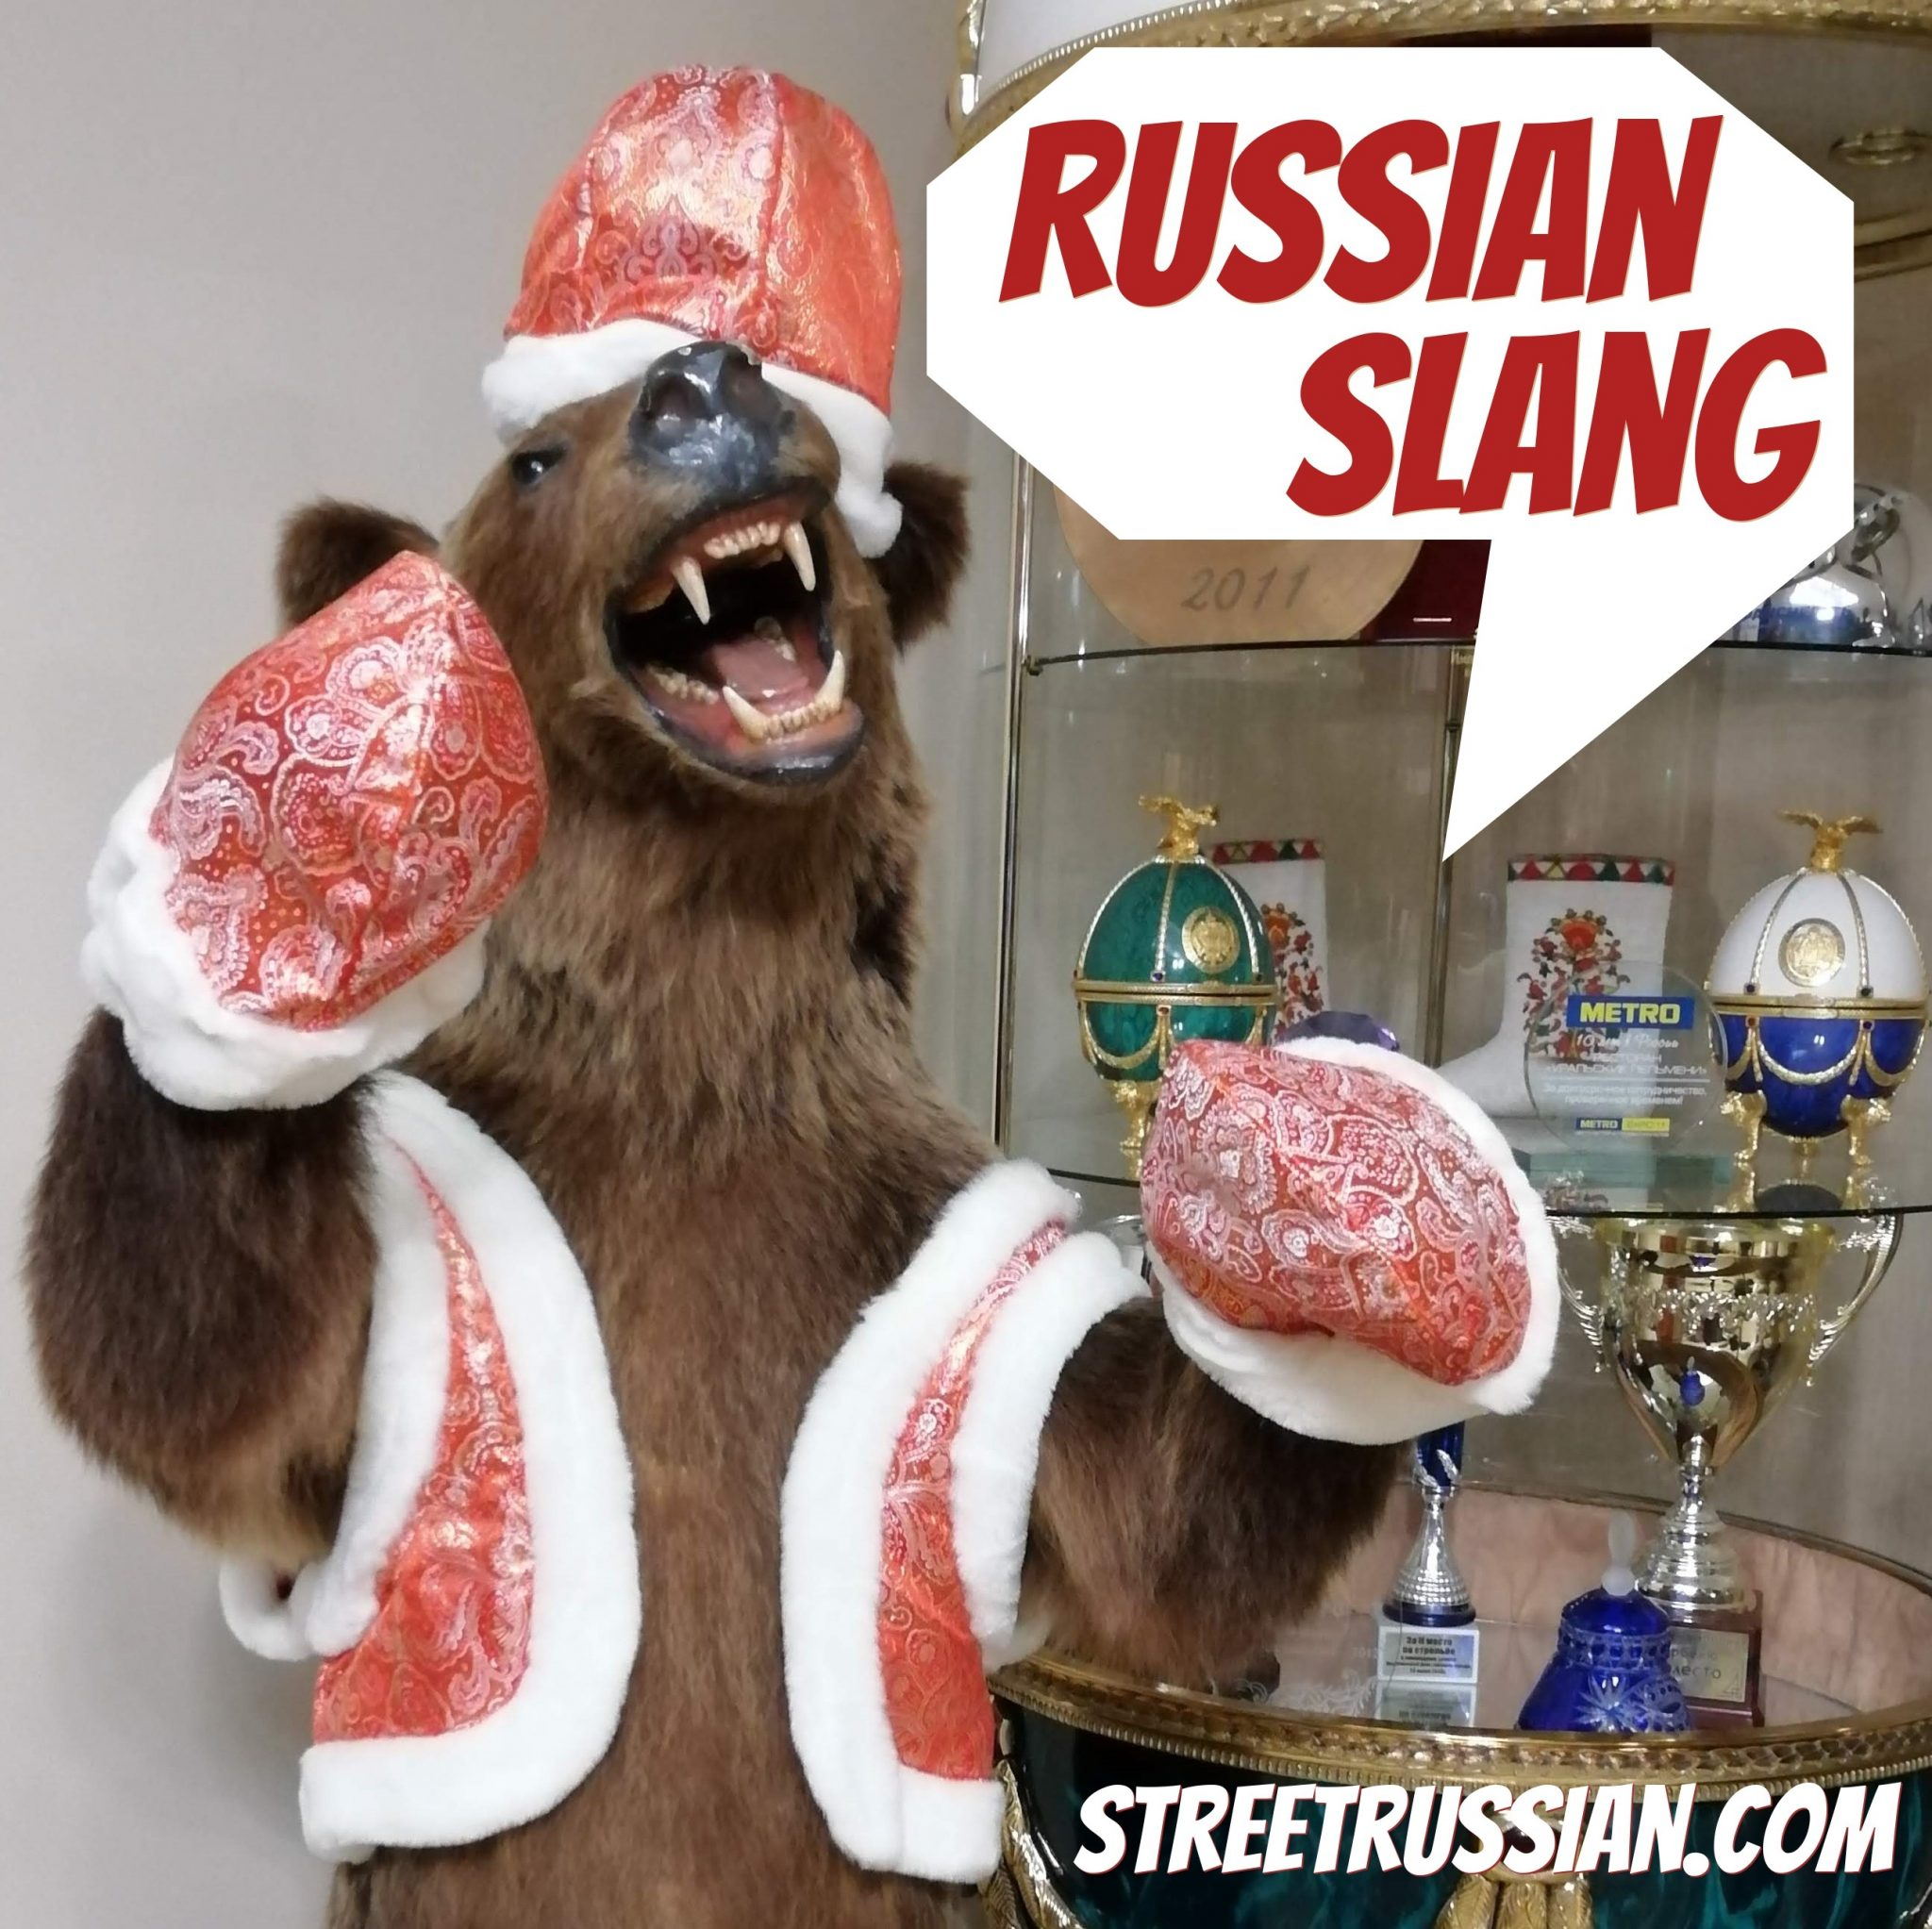 Mini Russian slang lesson